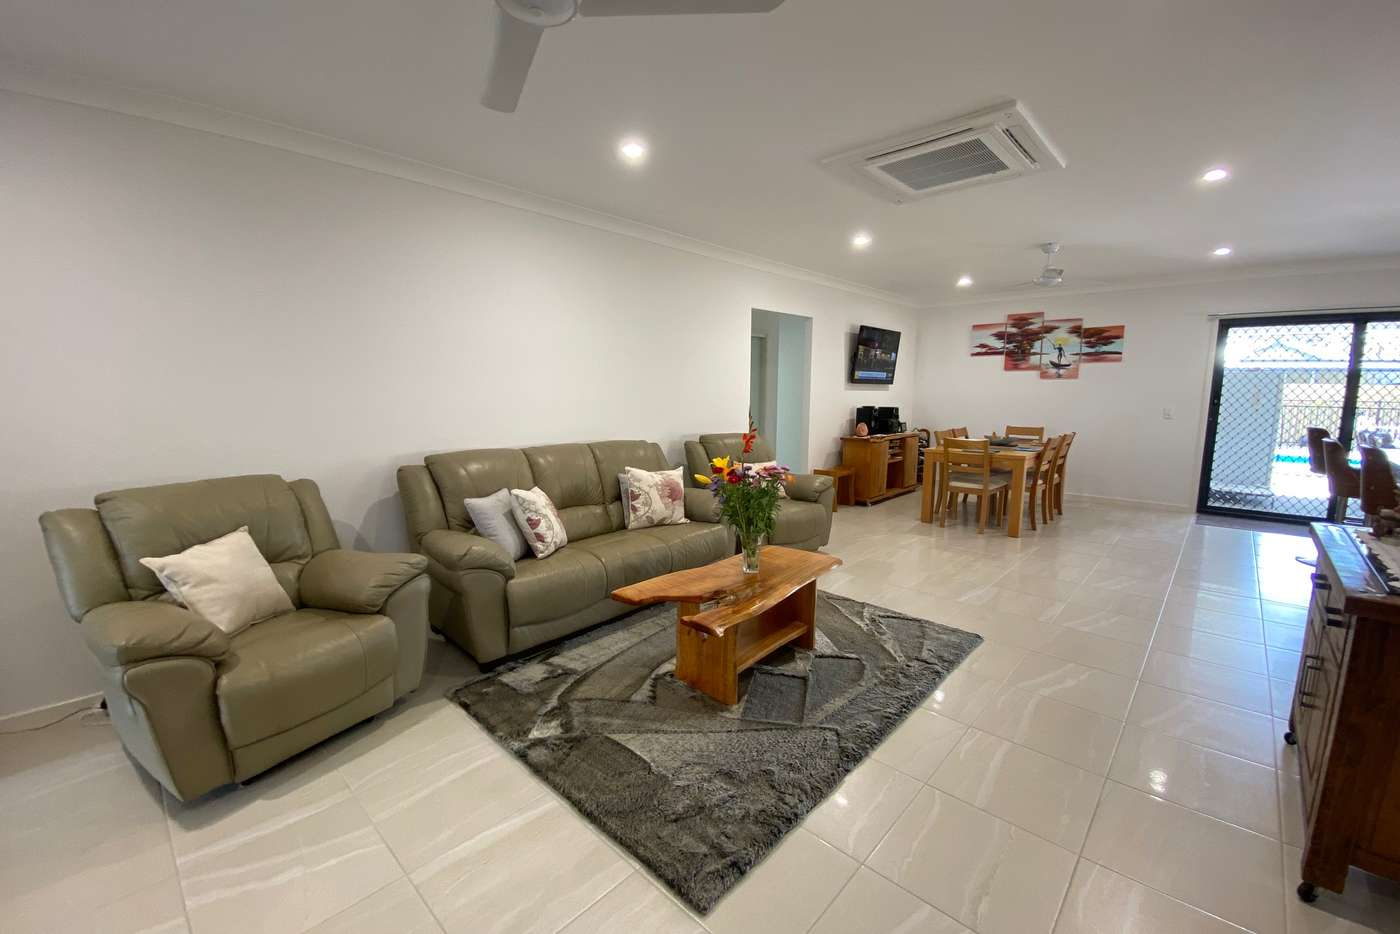 Sixth view of Homely house listing, 18 Cunningham Street, Torquay QLD 4655